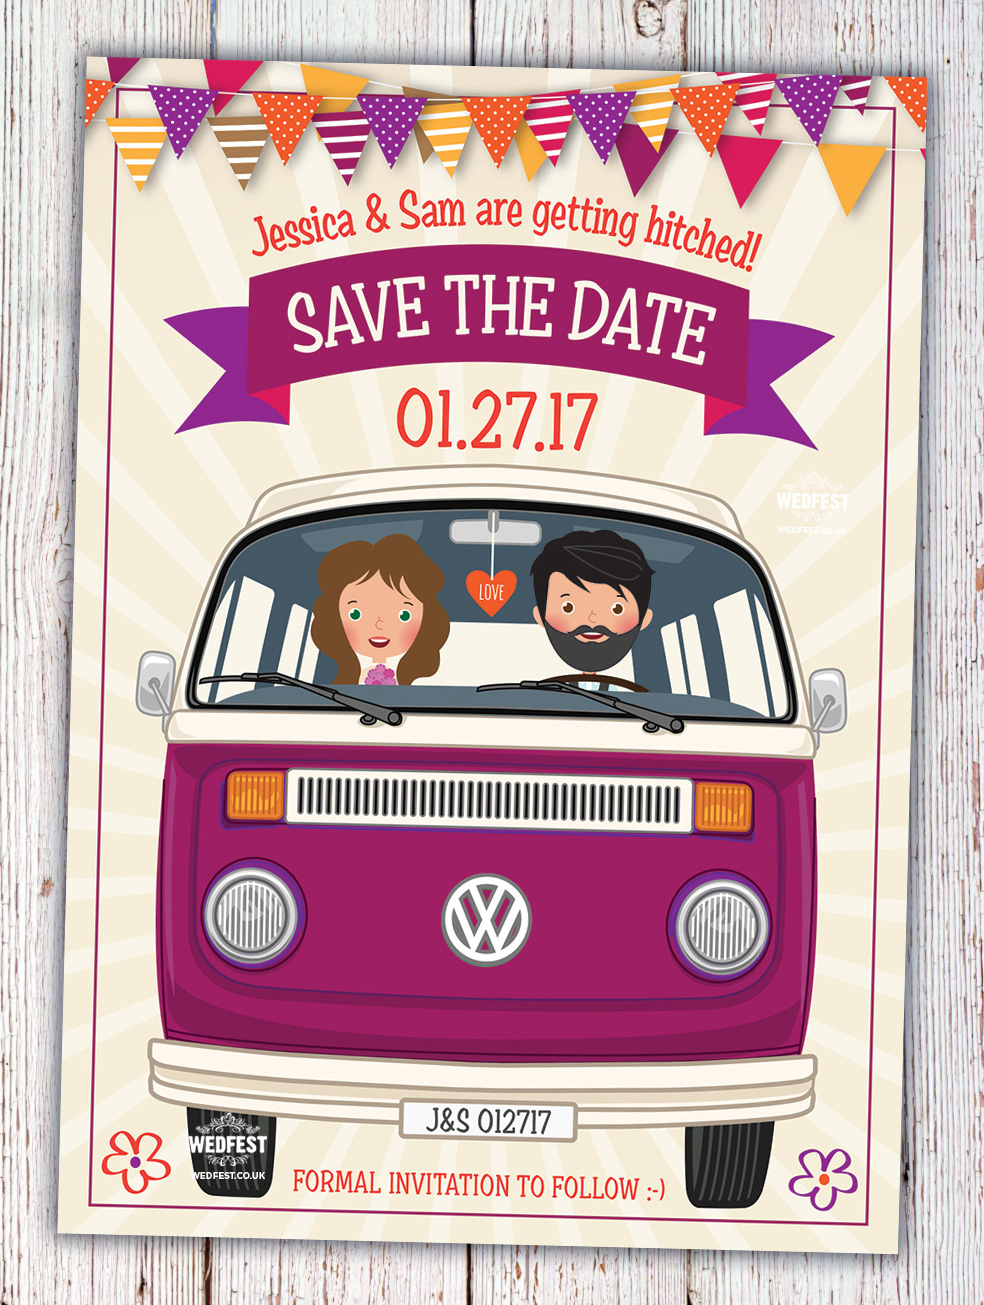 vw camper van festival wedding save the date cards